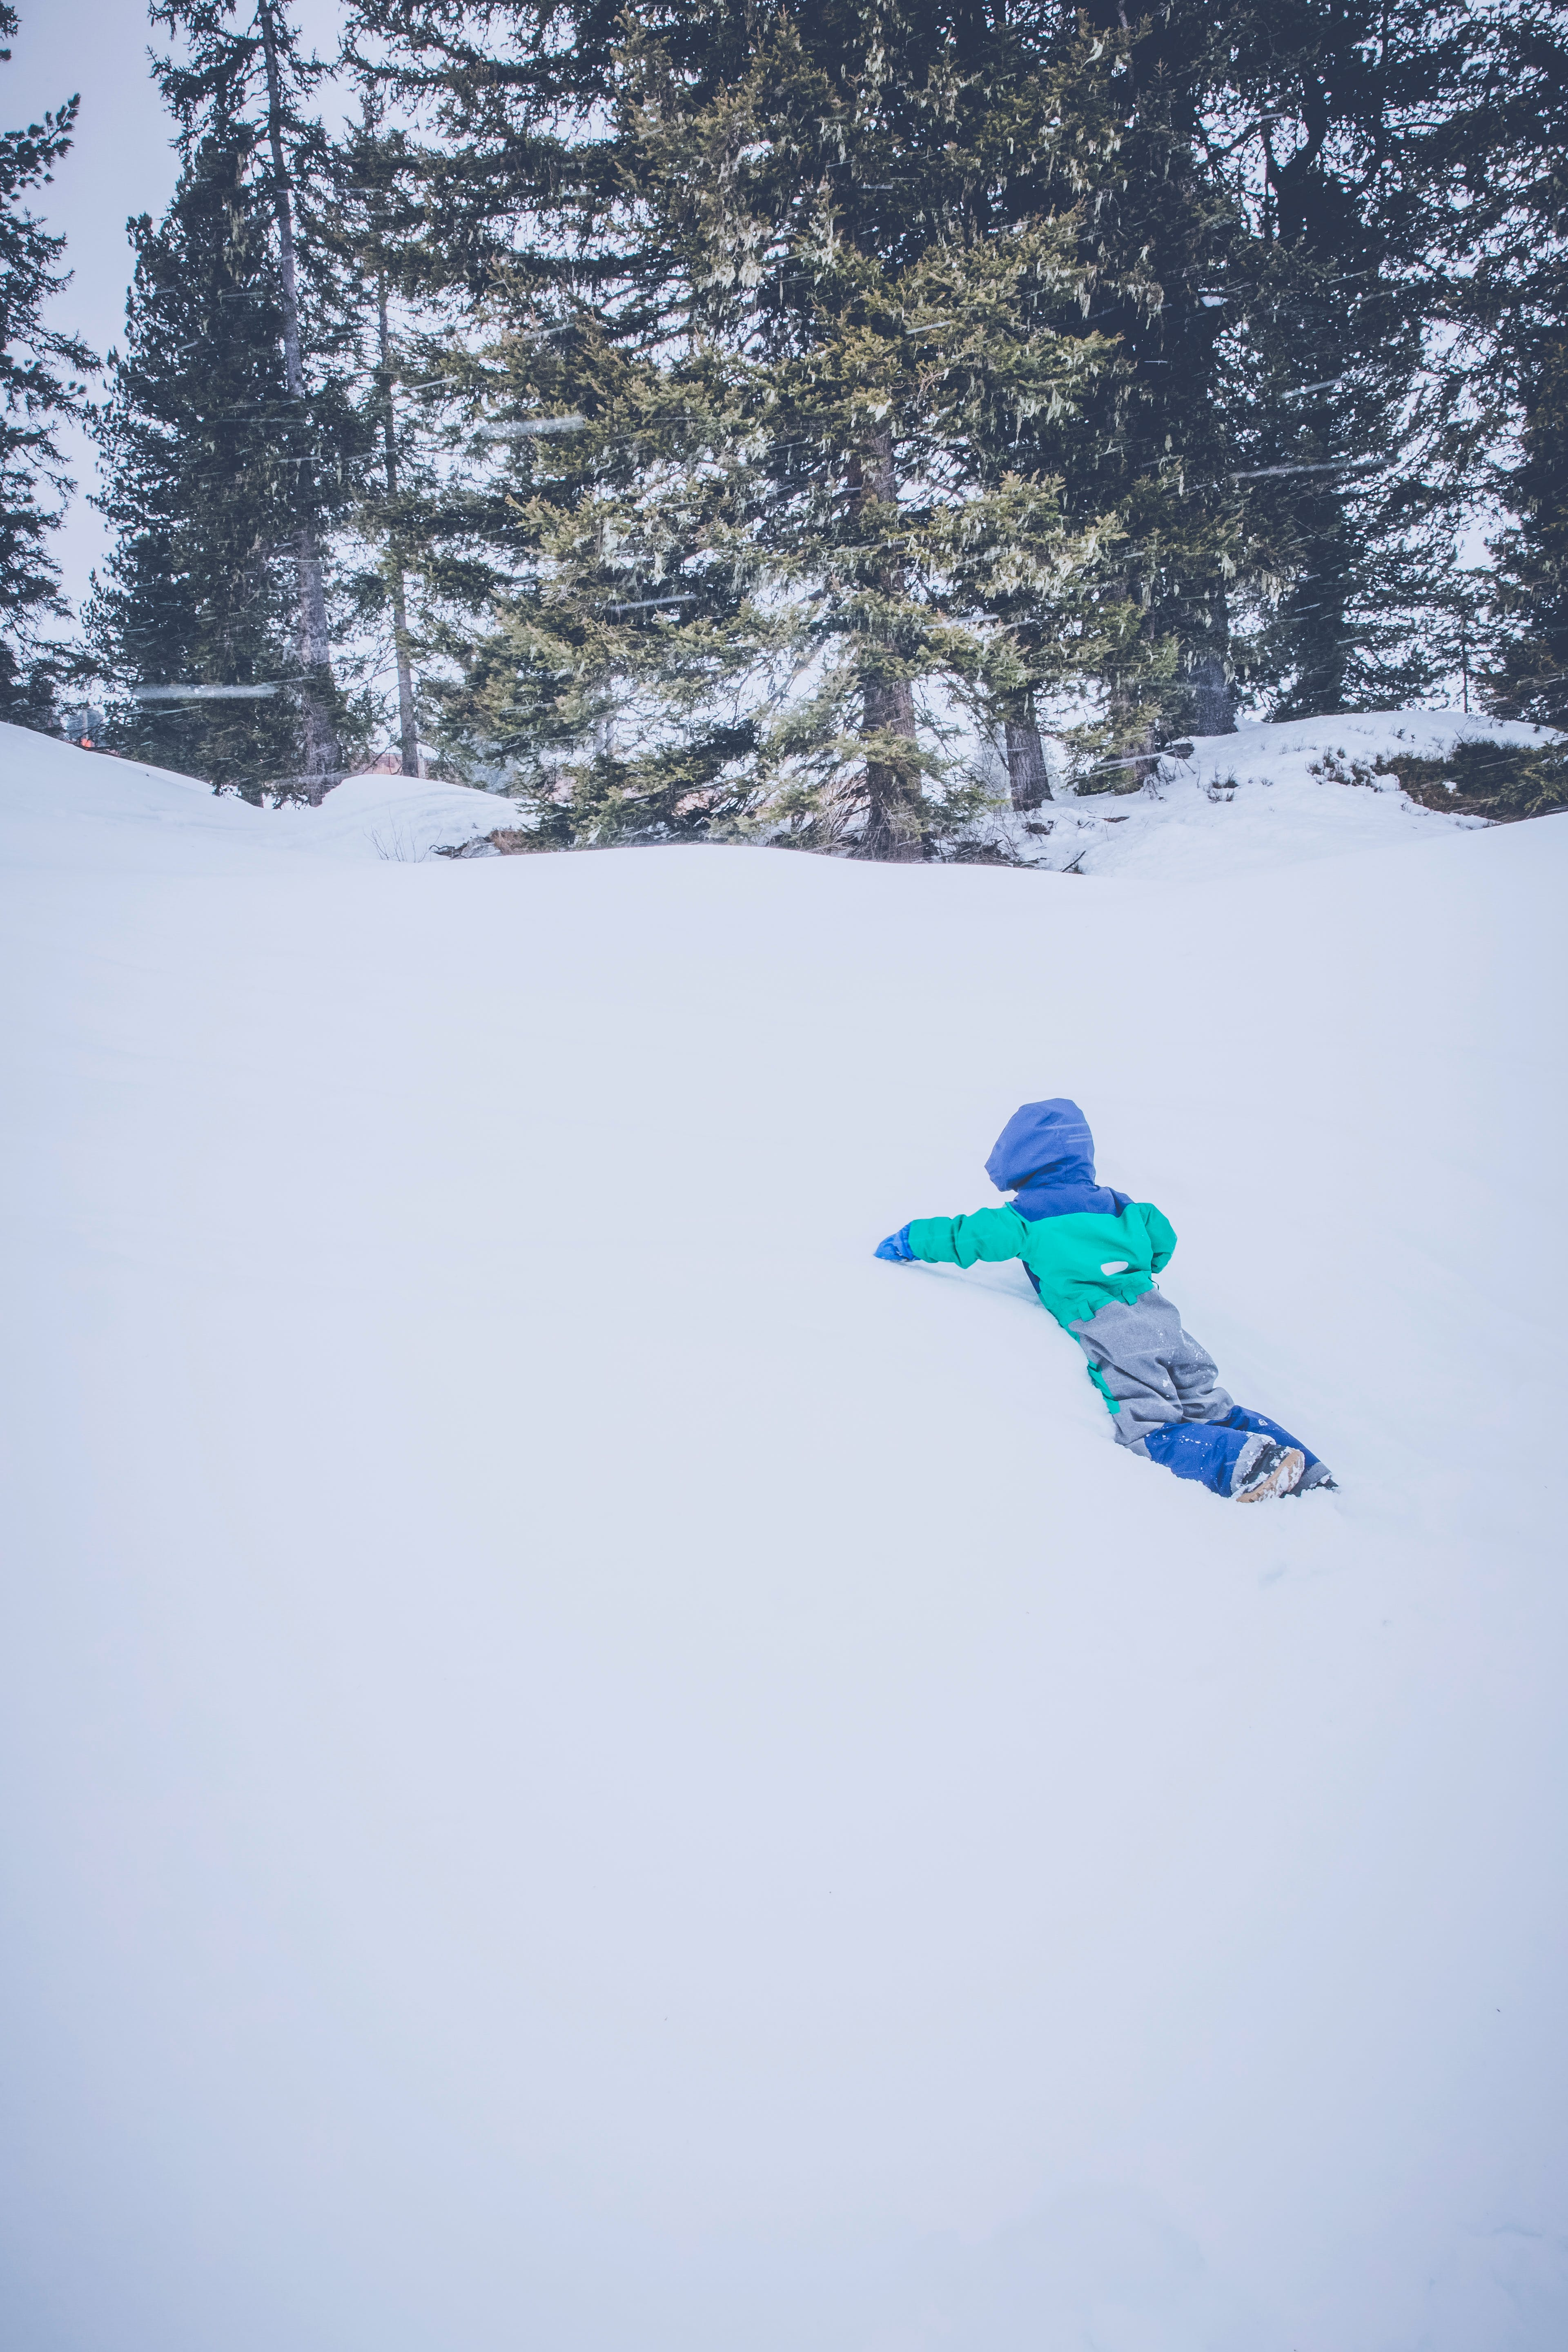 Toddler in Blue and Green Snow Suit on Snow Field during Daytime